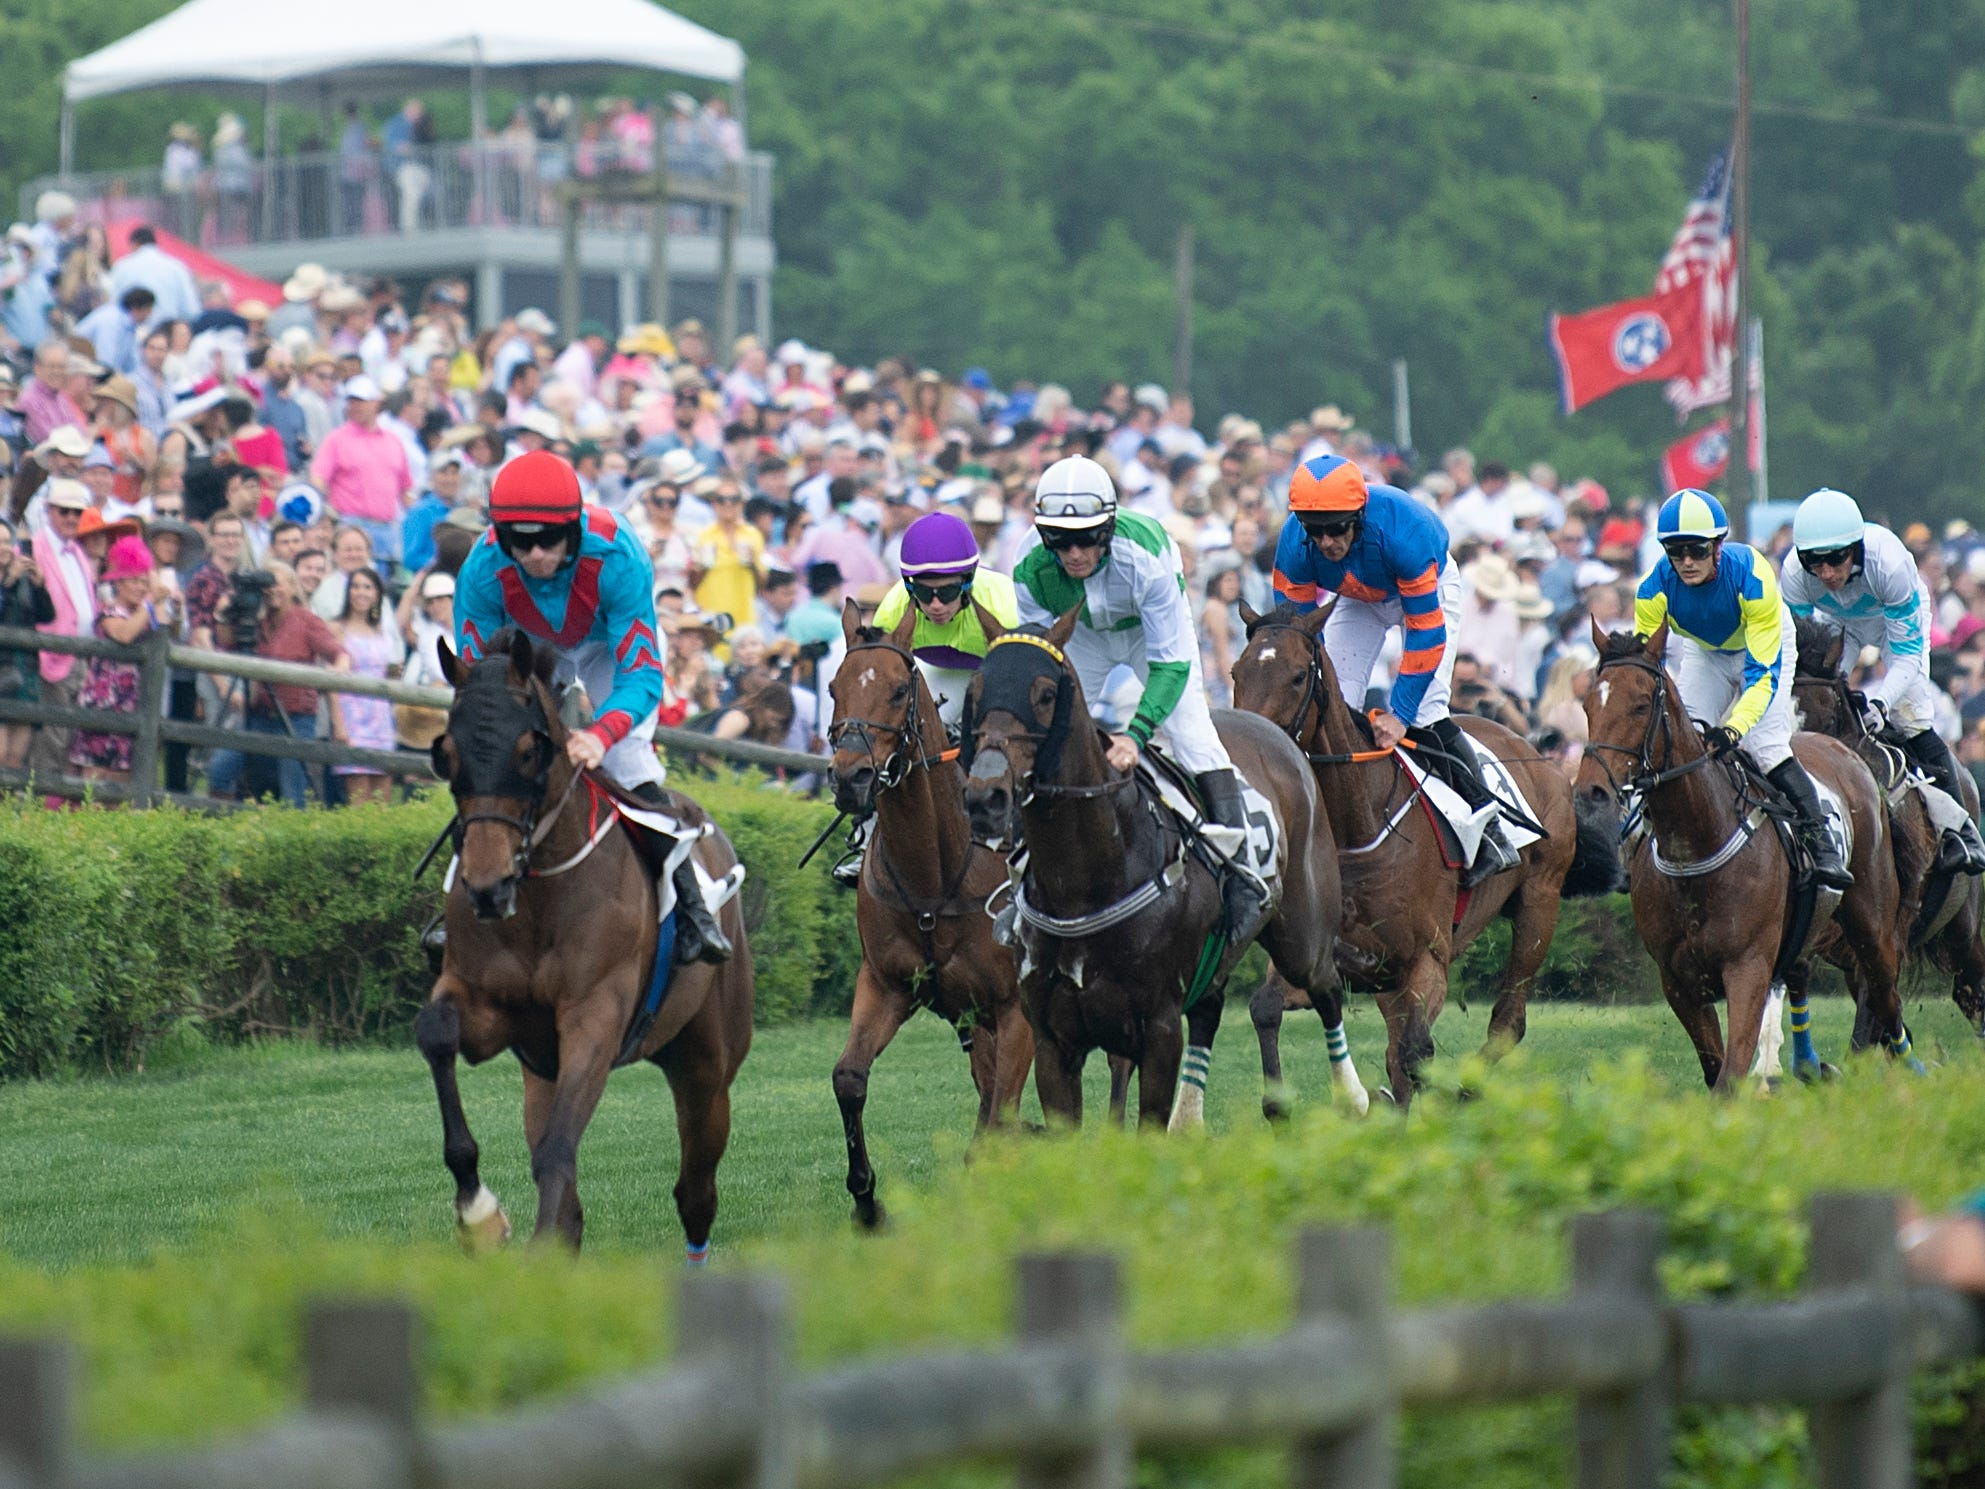 Fans watch as horses race during the 78th Iroquois Steeplechase at Percy Warner Park in Nashville on Saturday, May 11, 2019.